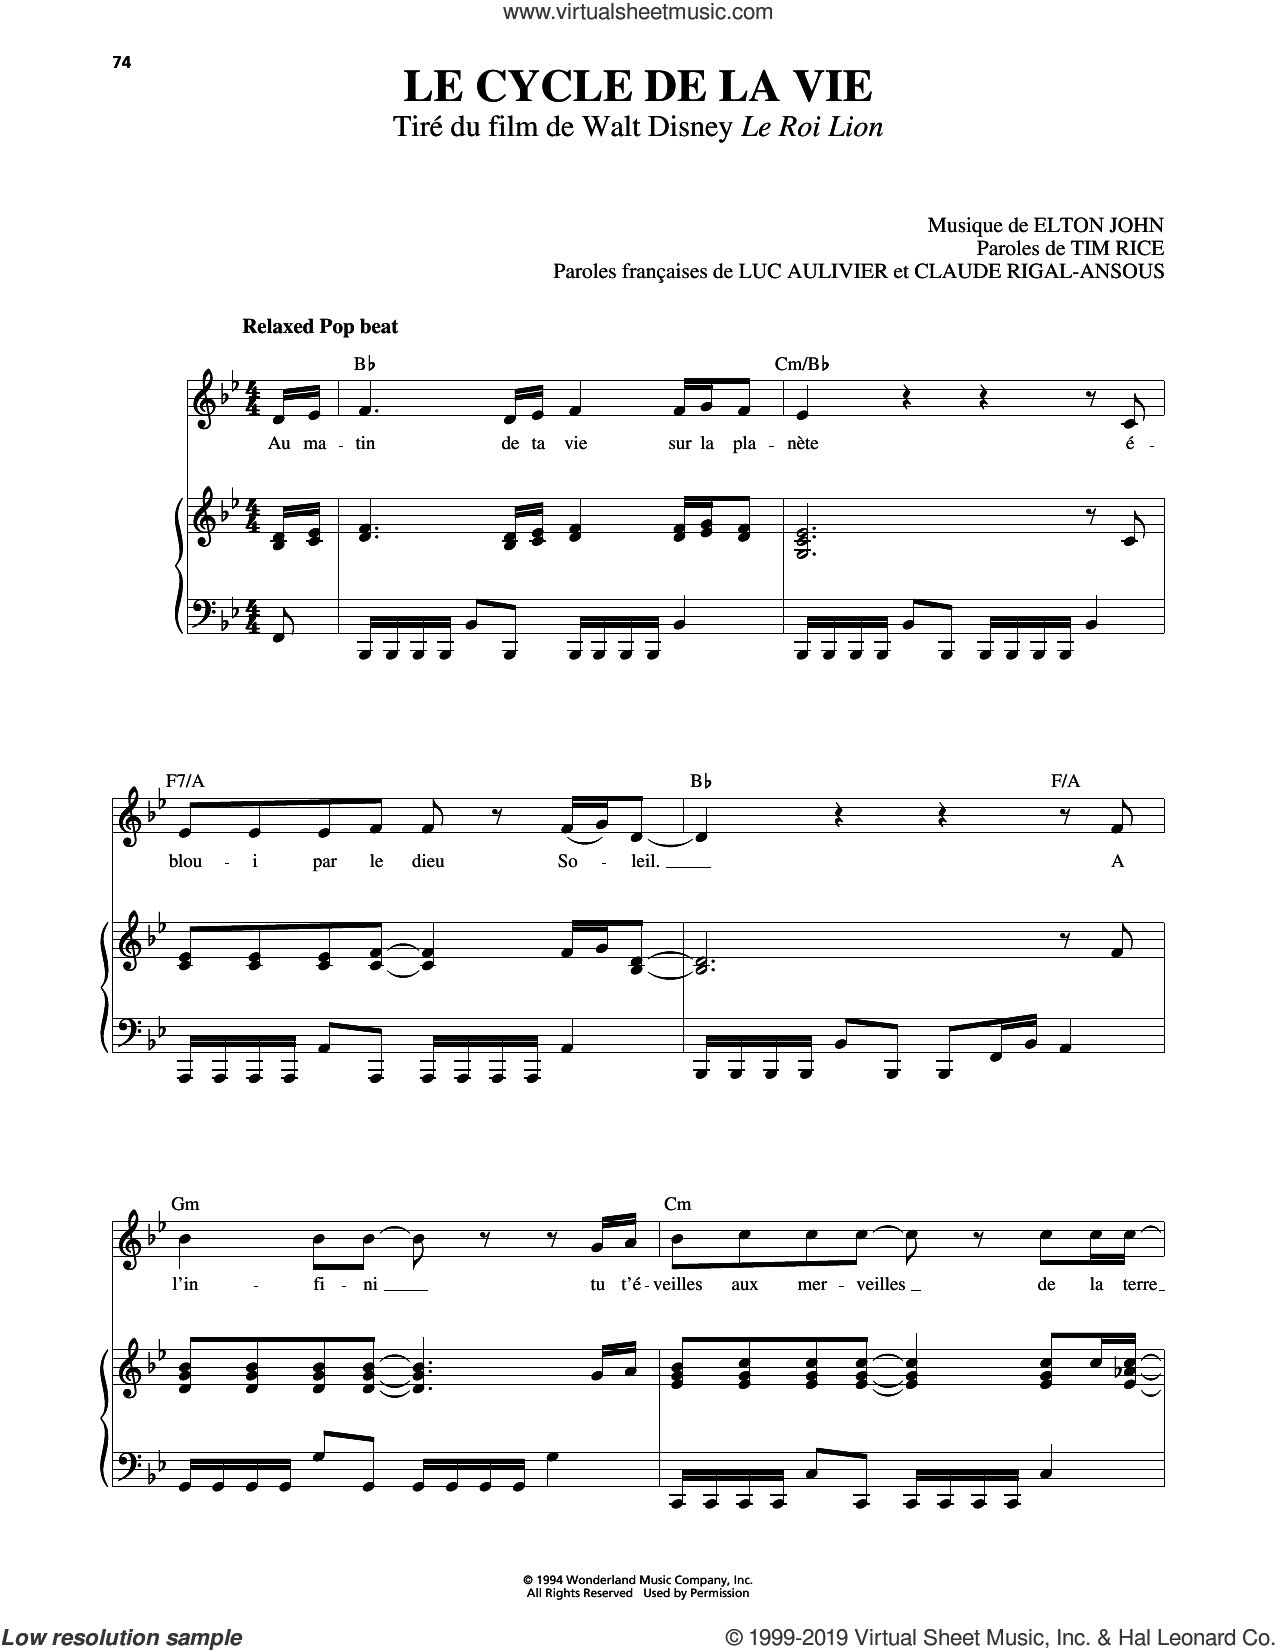 Circle Of Life (from The Lion King) [French version] sheet music for voice, piano or guitar by Elton John and Tim Rice, intermediate skill level